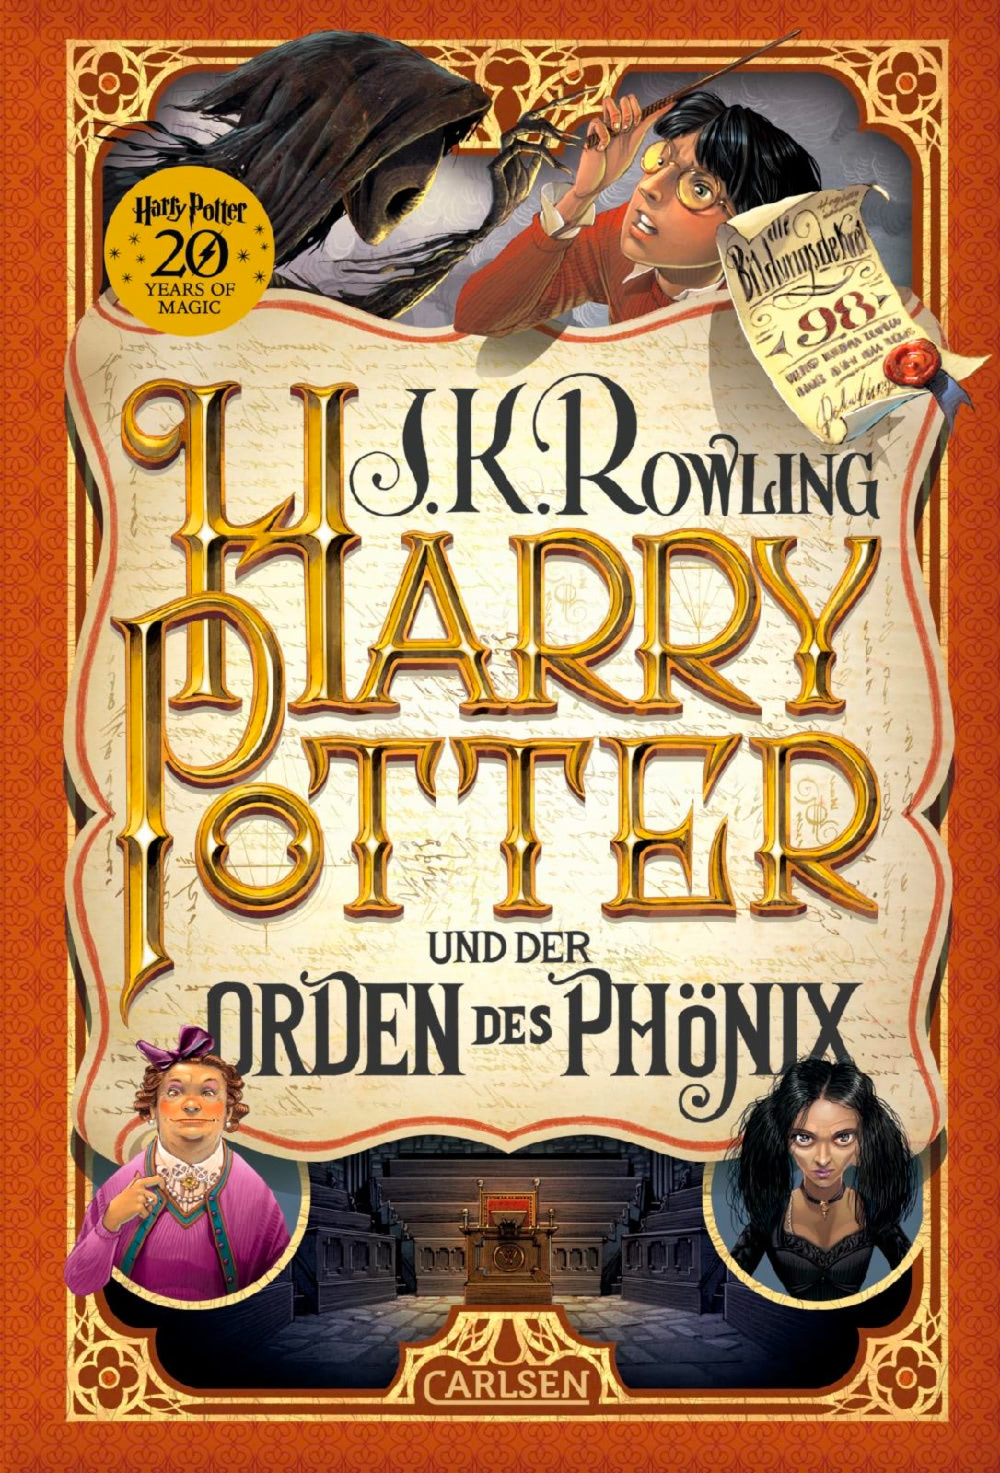 'Order of the Phoenix' German '20 Years of Magic' edition